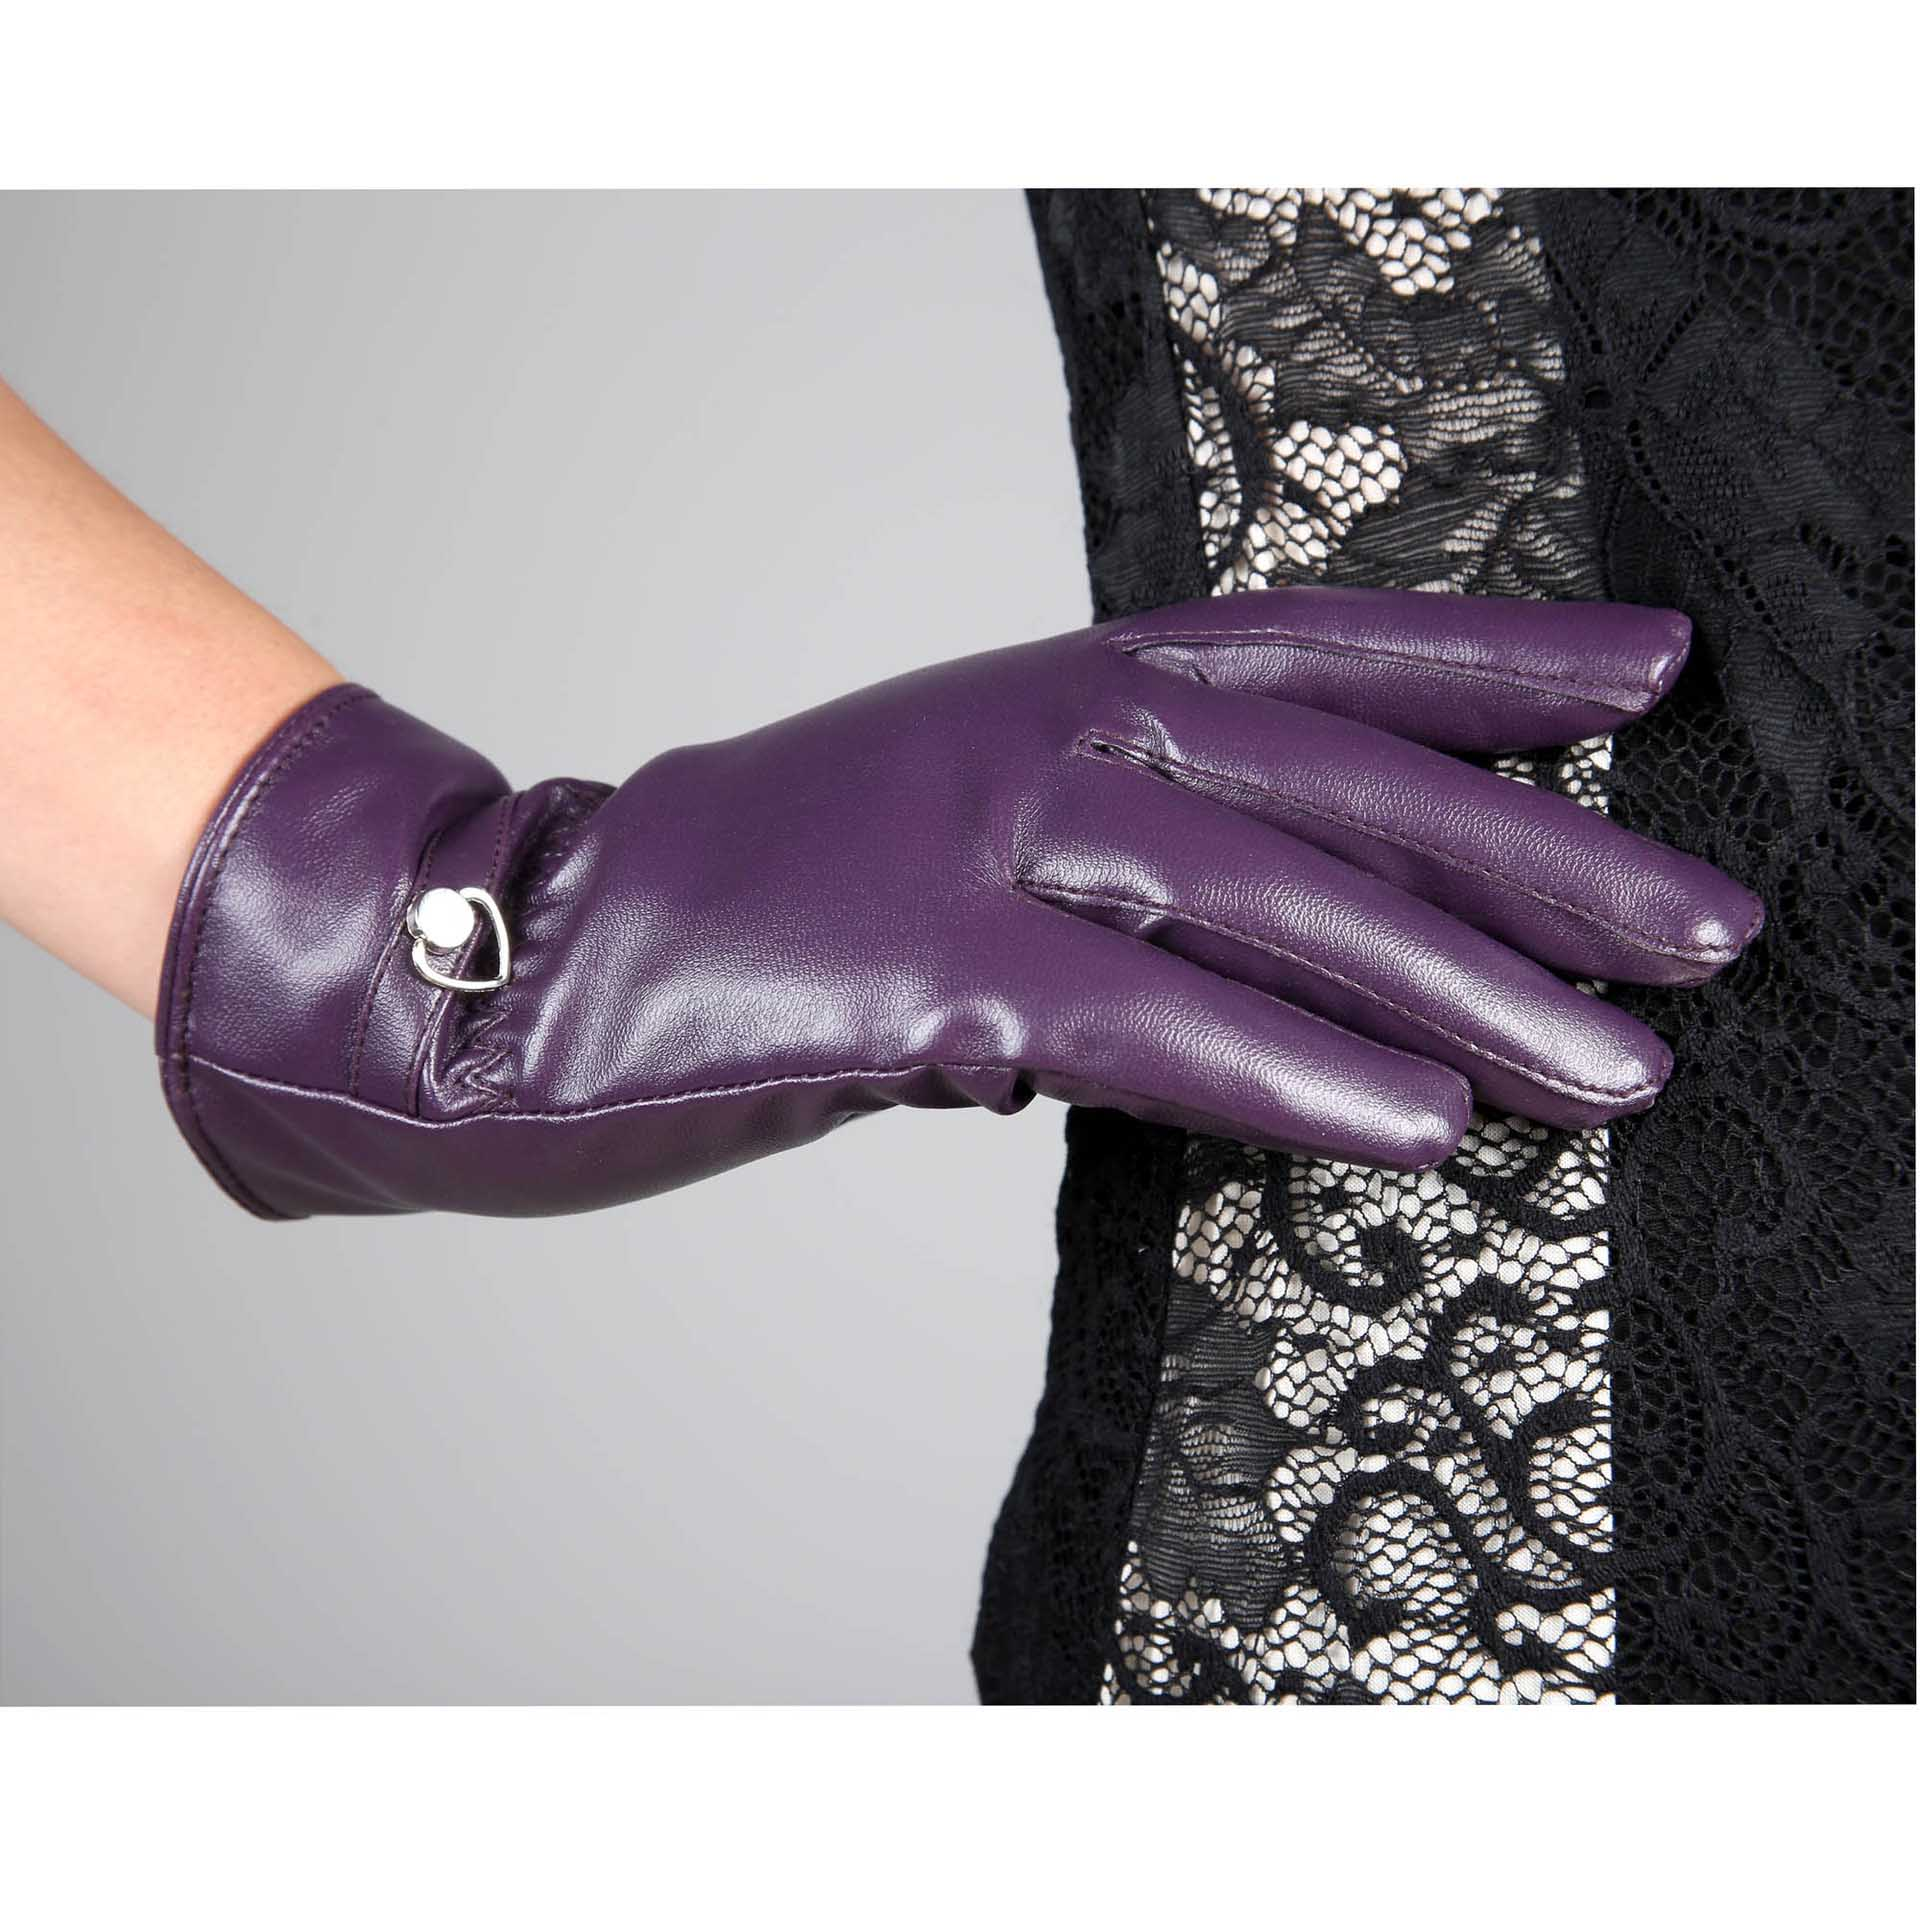 Motorcycle gloves metal - Women S Autumn And Winter Warm Thermal Heart Pu Leather Casual Motorcycle Gloves Heart Metal Mittens Purple